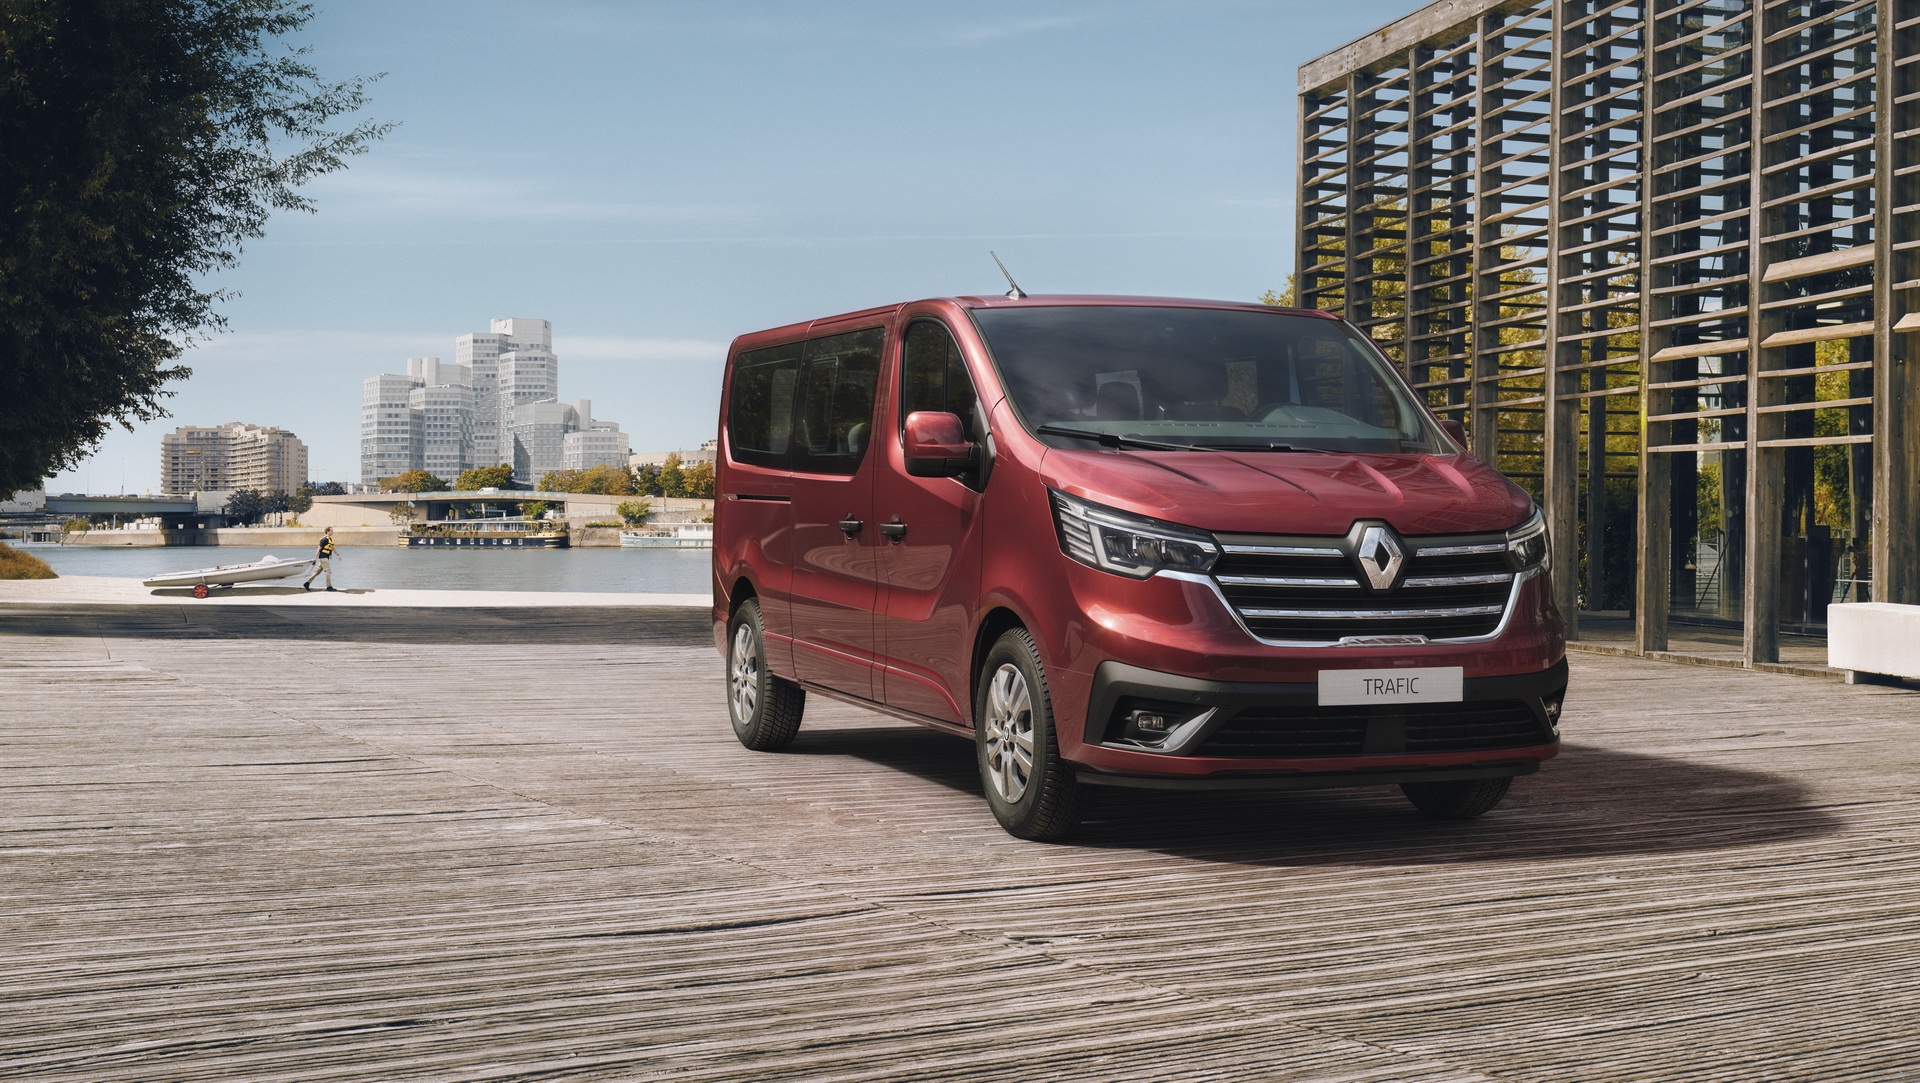 2021-renault-trafic-spaceclass-1